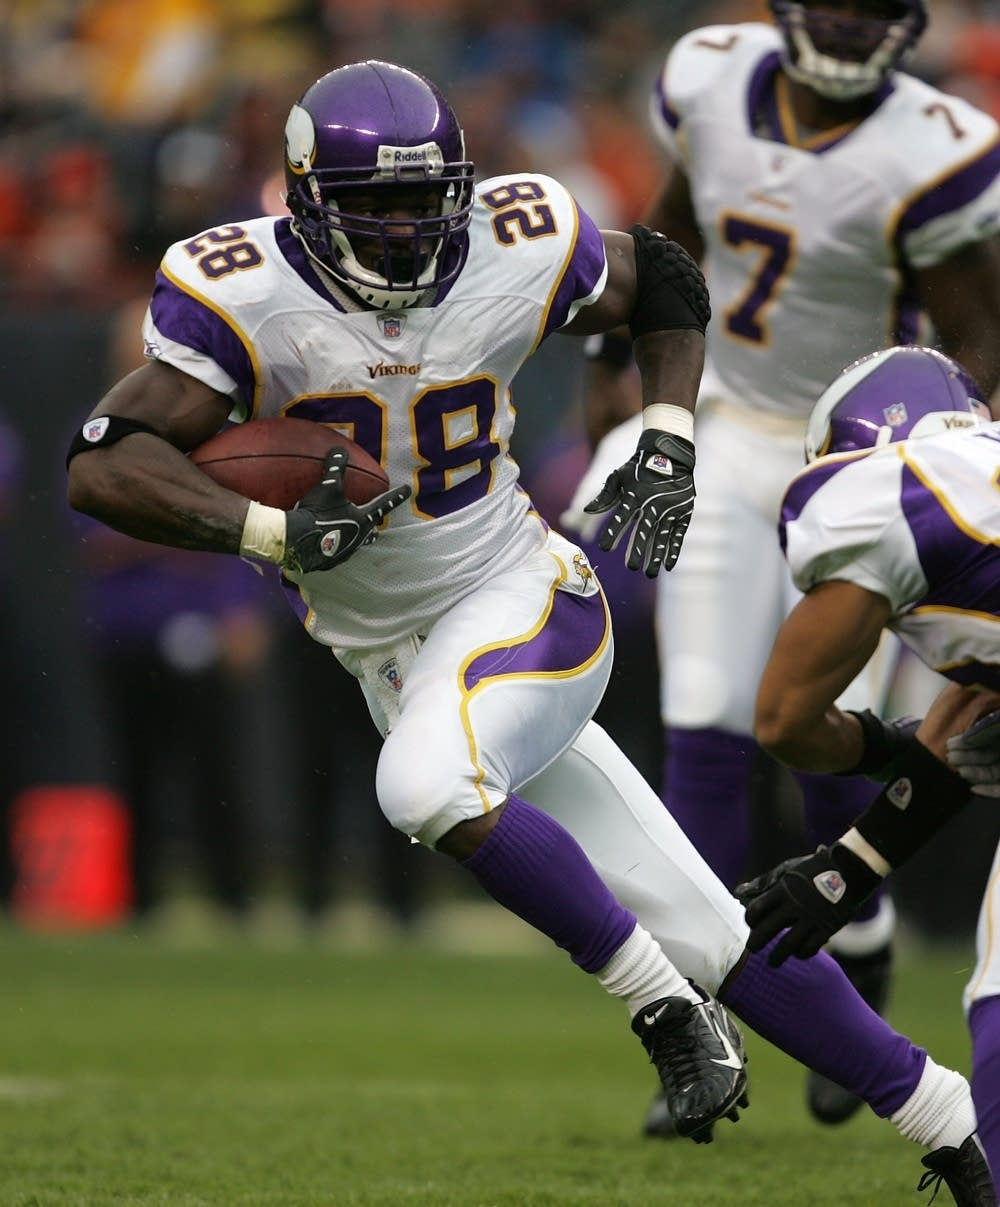 Vikings RB Adrian Peterson